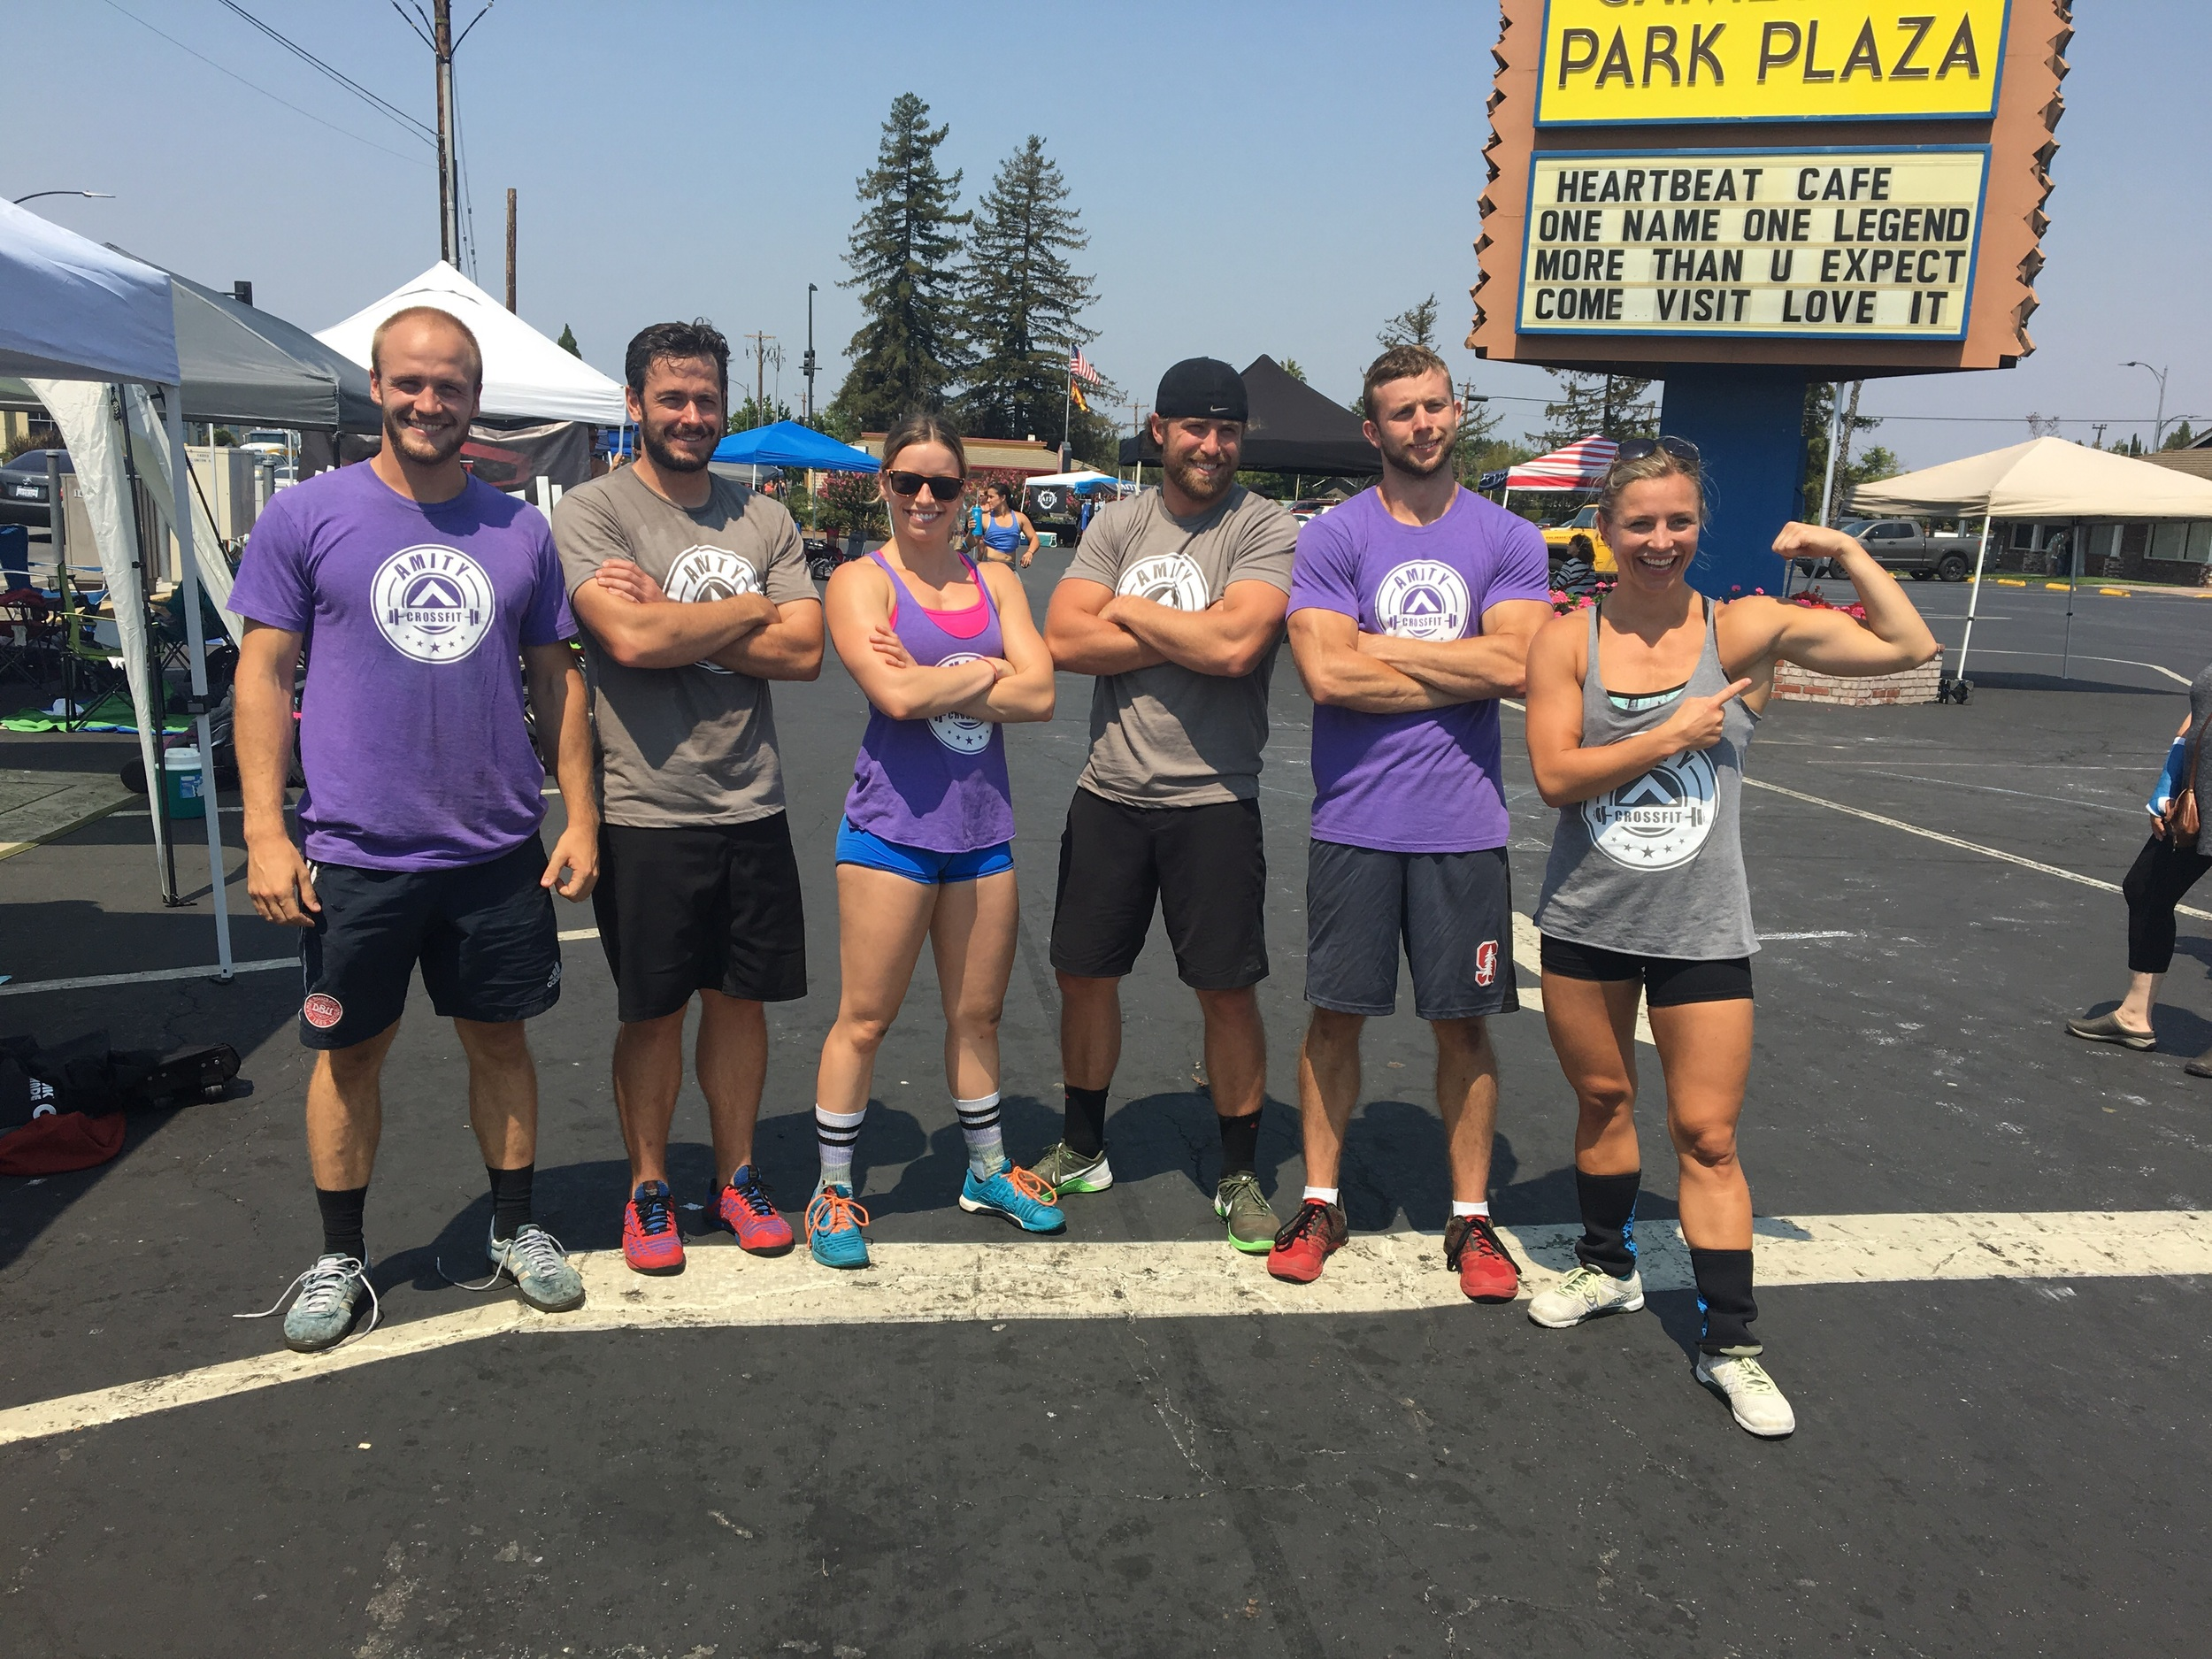 Congratulations to the Burpee Bears and Suicide Quads on their competition this weekend.